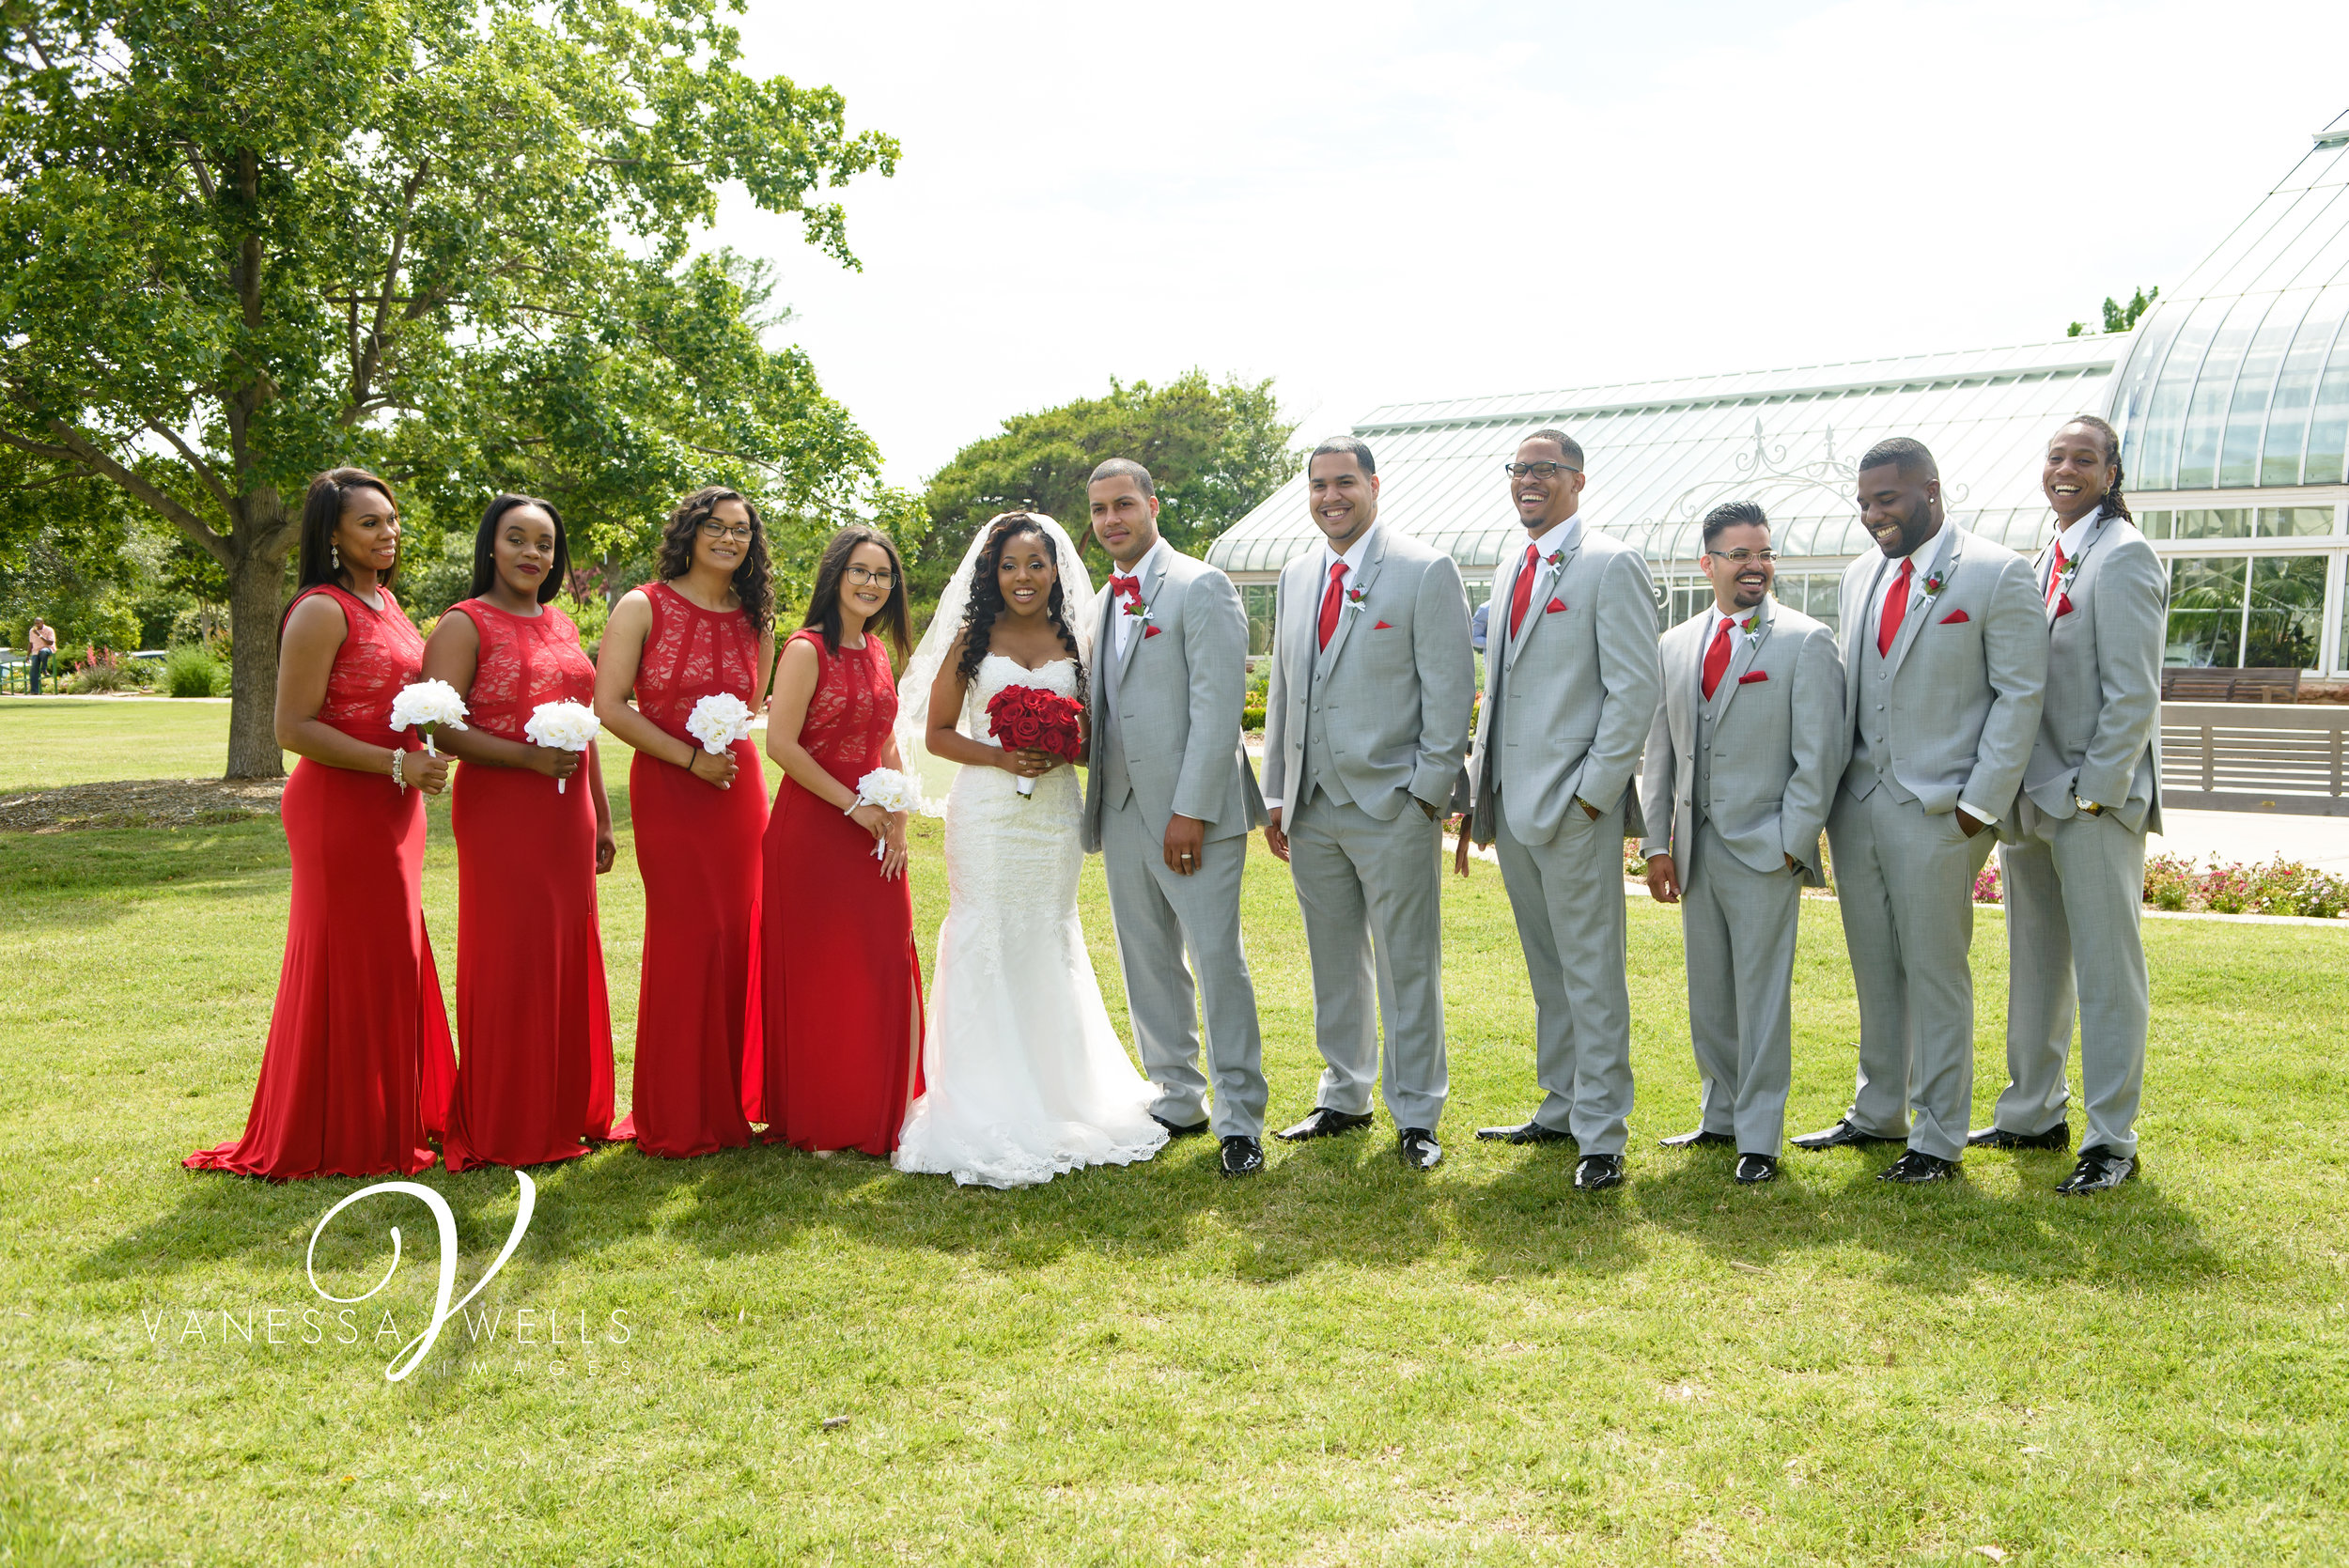 Bridal Party Wedding photographer in OKC Will Rogers Garden